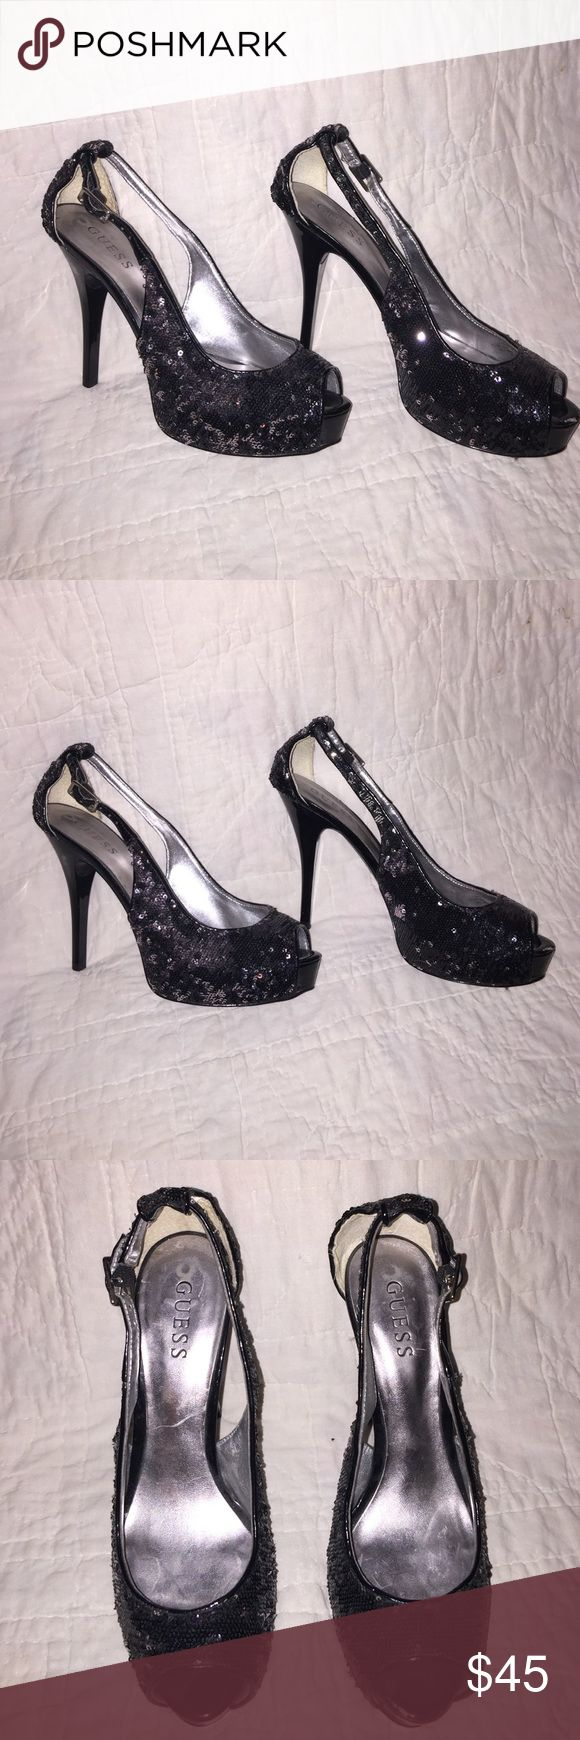 Guess bling heels. Beautiful UEC Guess Bling Heels. Peep toe. One small fracture as seen in picture, discounted. Guess Shoes Heels